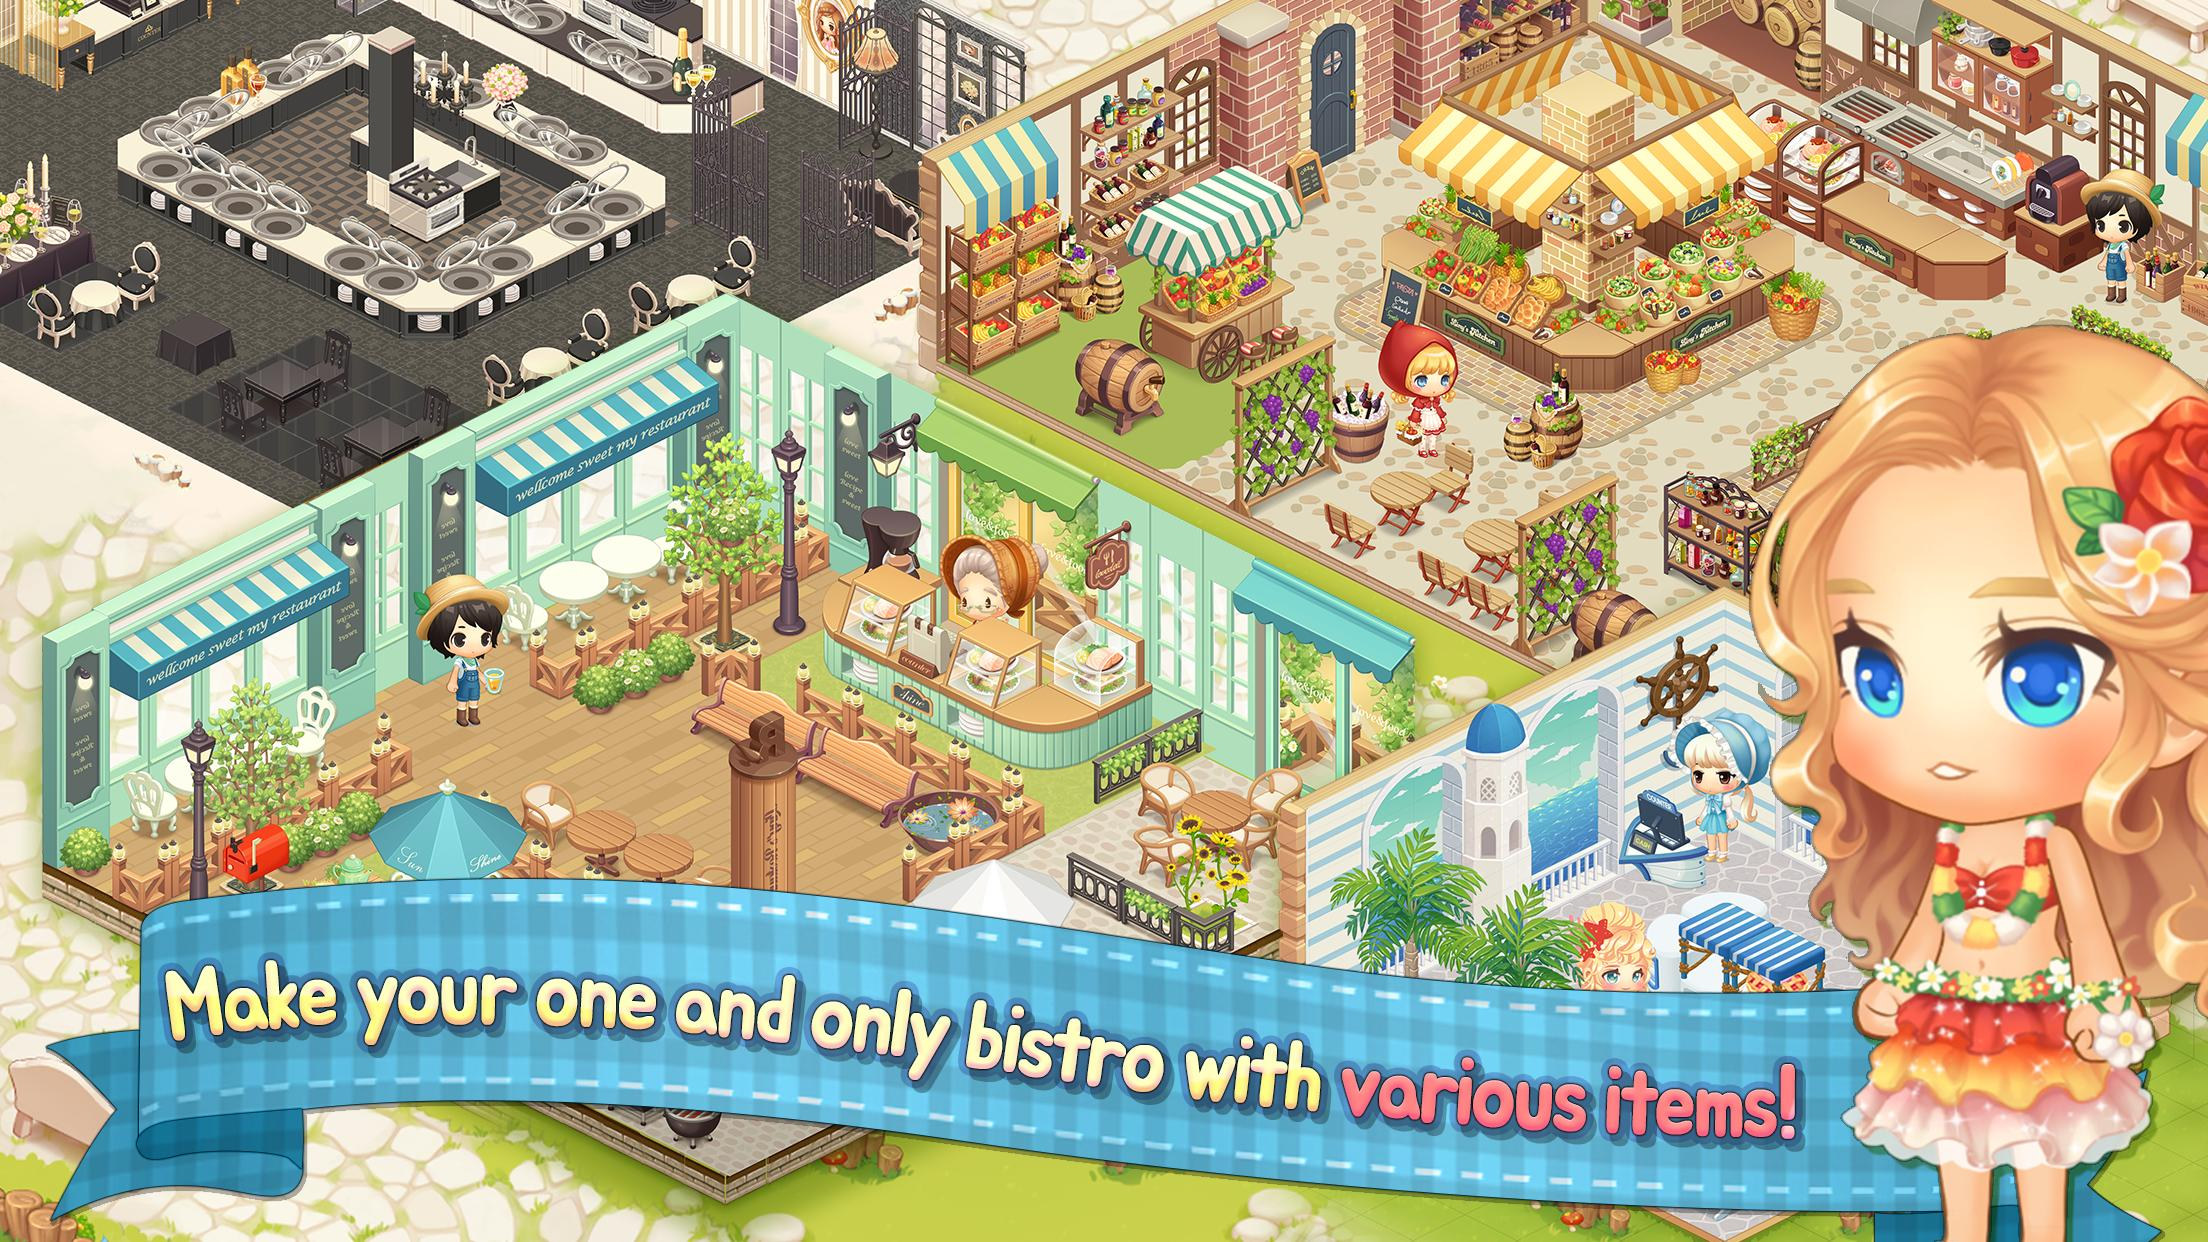 My Secret Bistro Play cooking game with friends 1.6.4 Screenshot 11